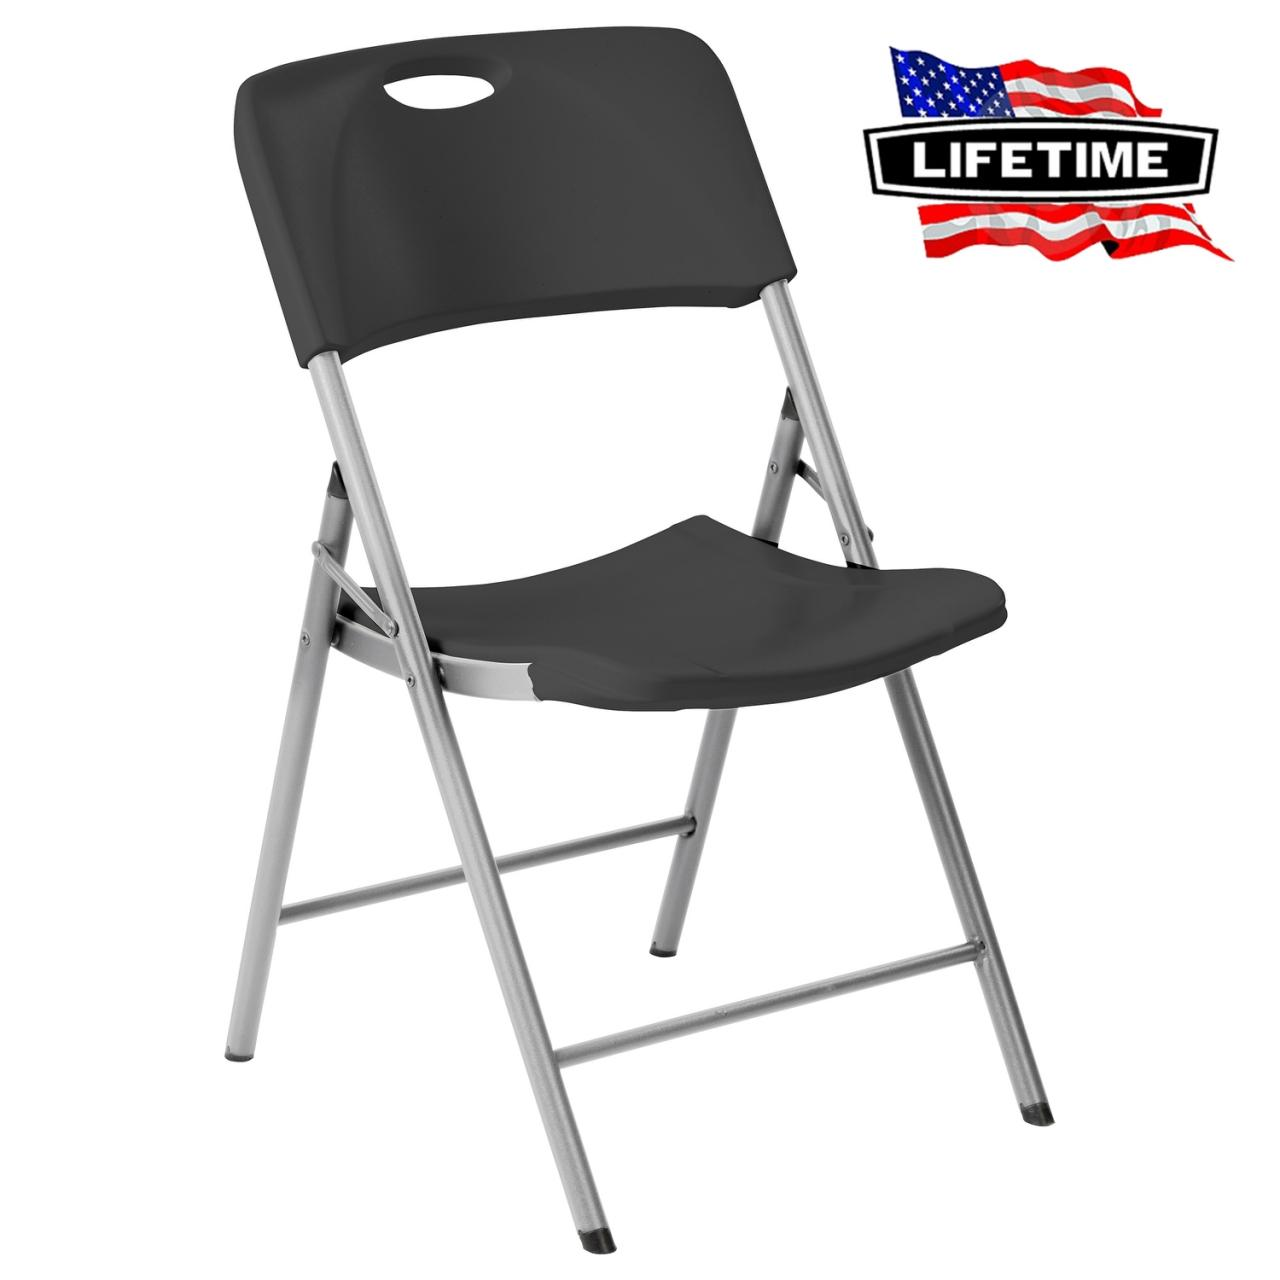 Lifetime Chair Lifetime 80629 Folding Chair Black